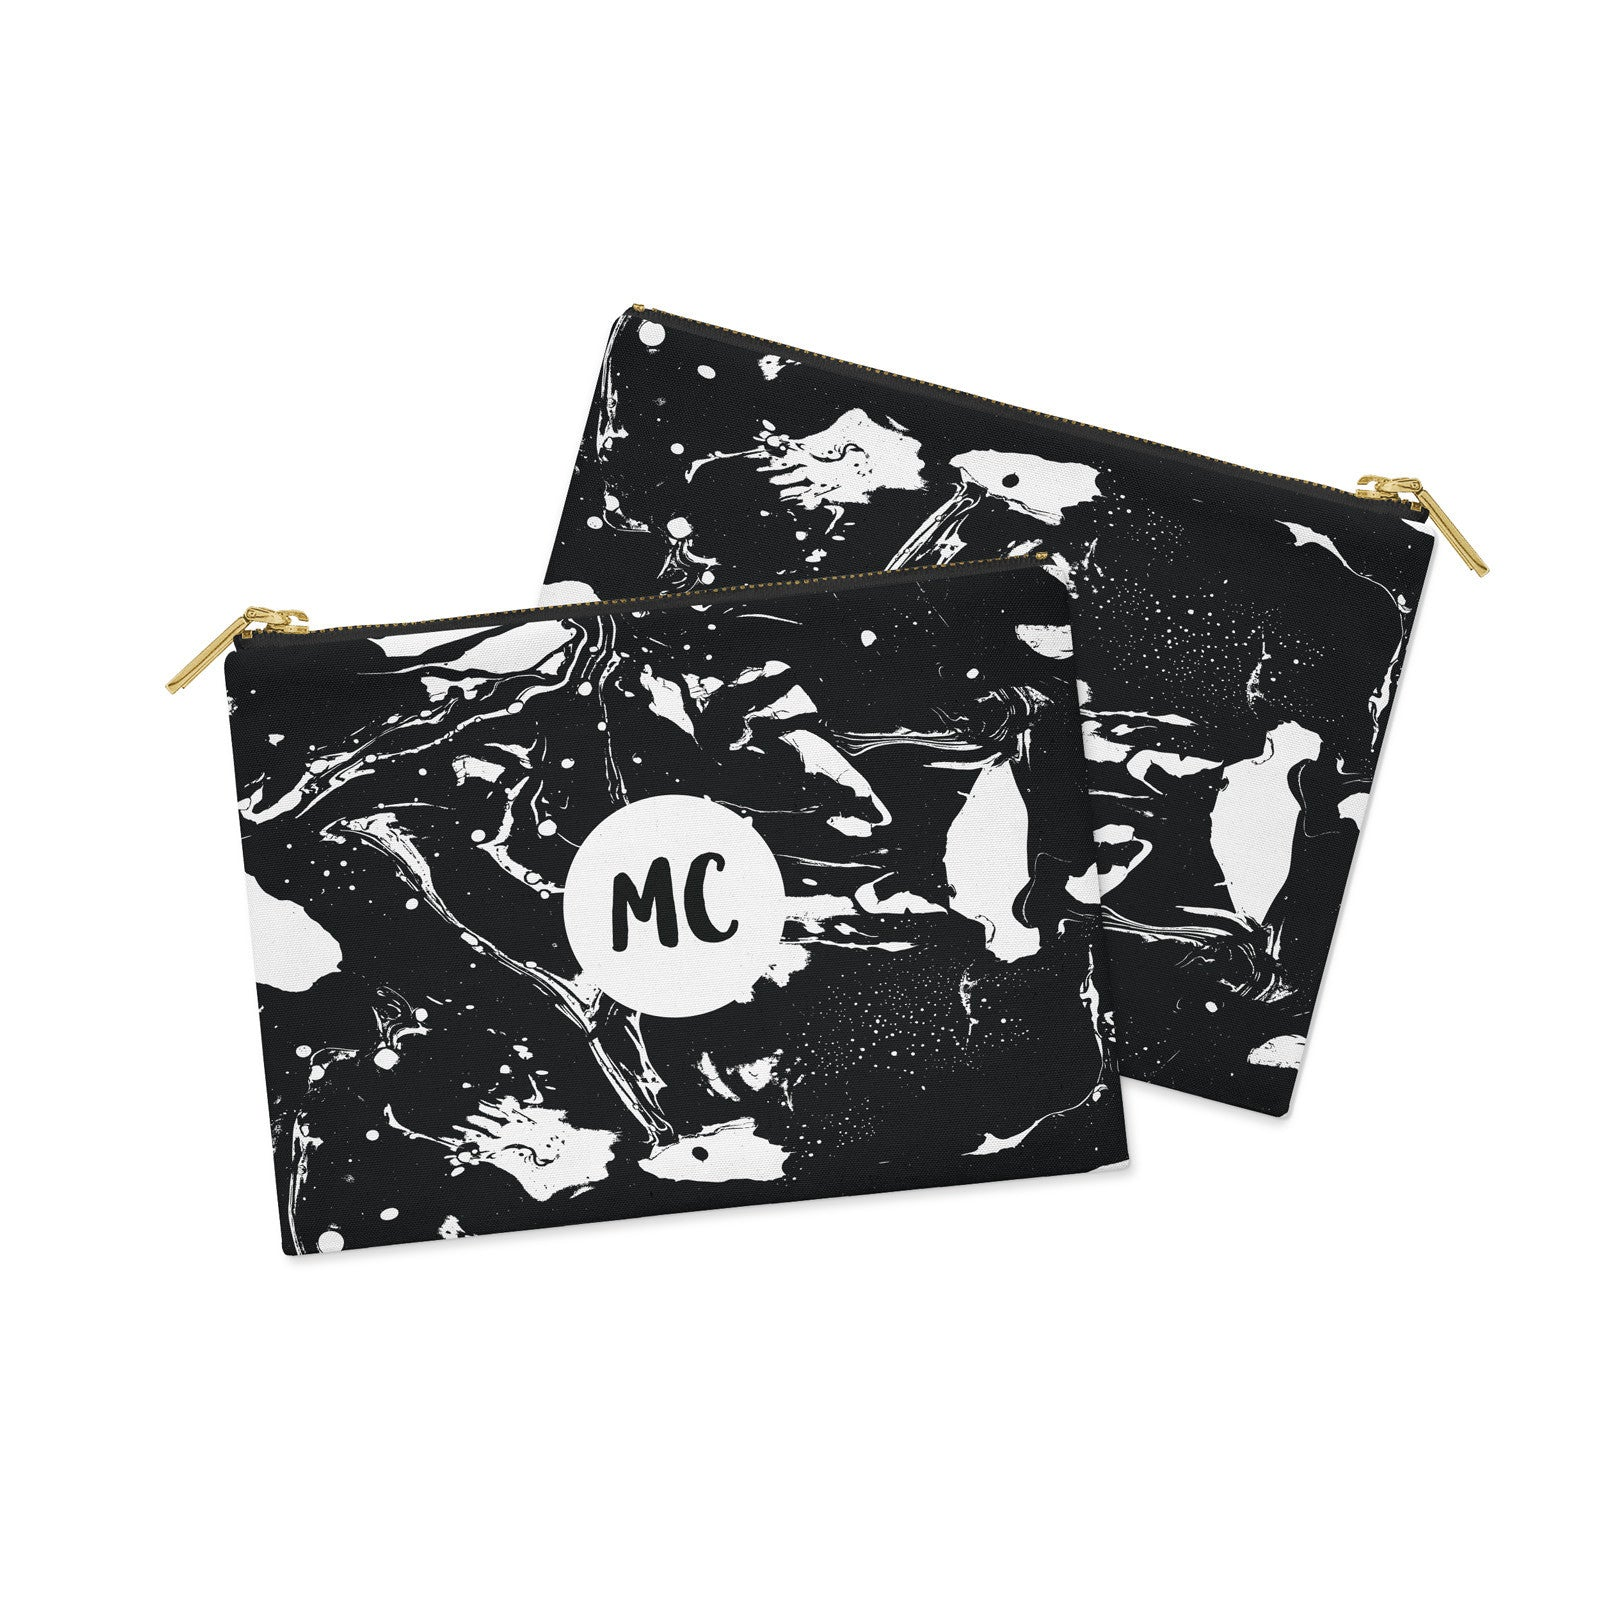 Monogram Black & White Marble Canvas Clutch Bag